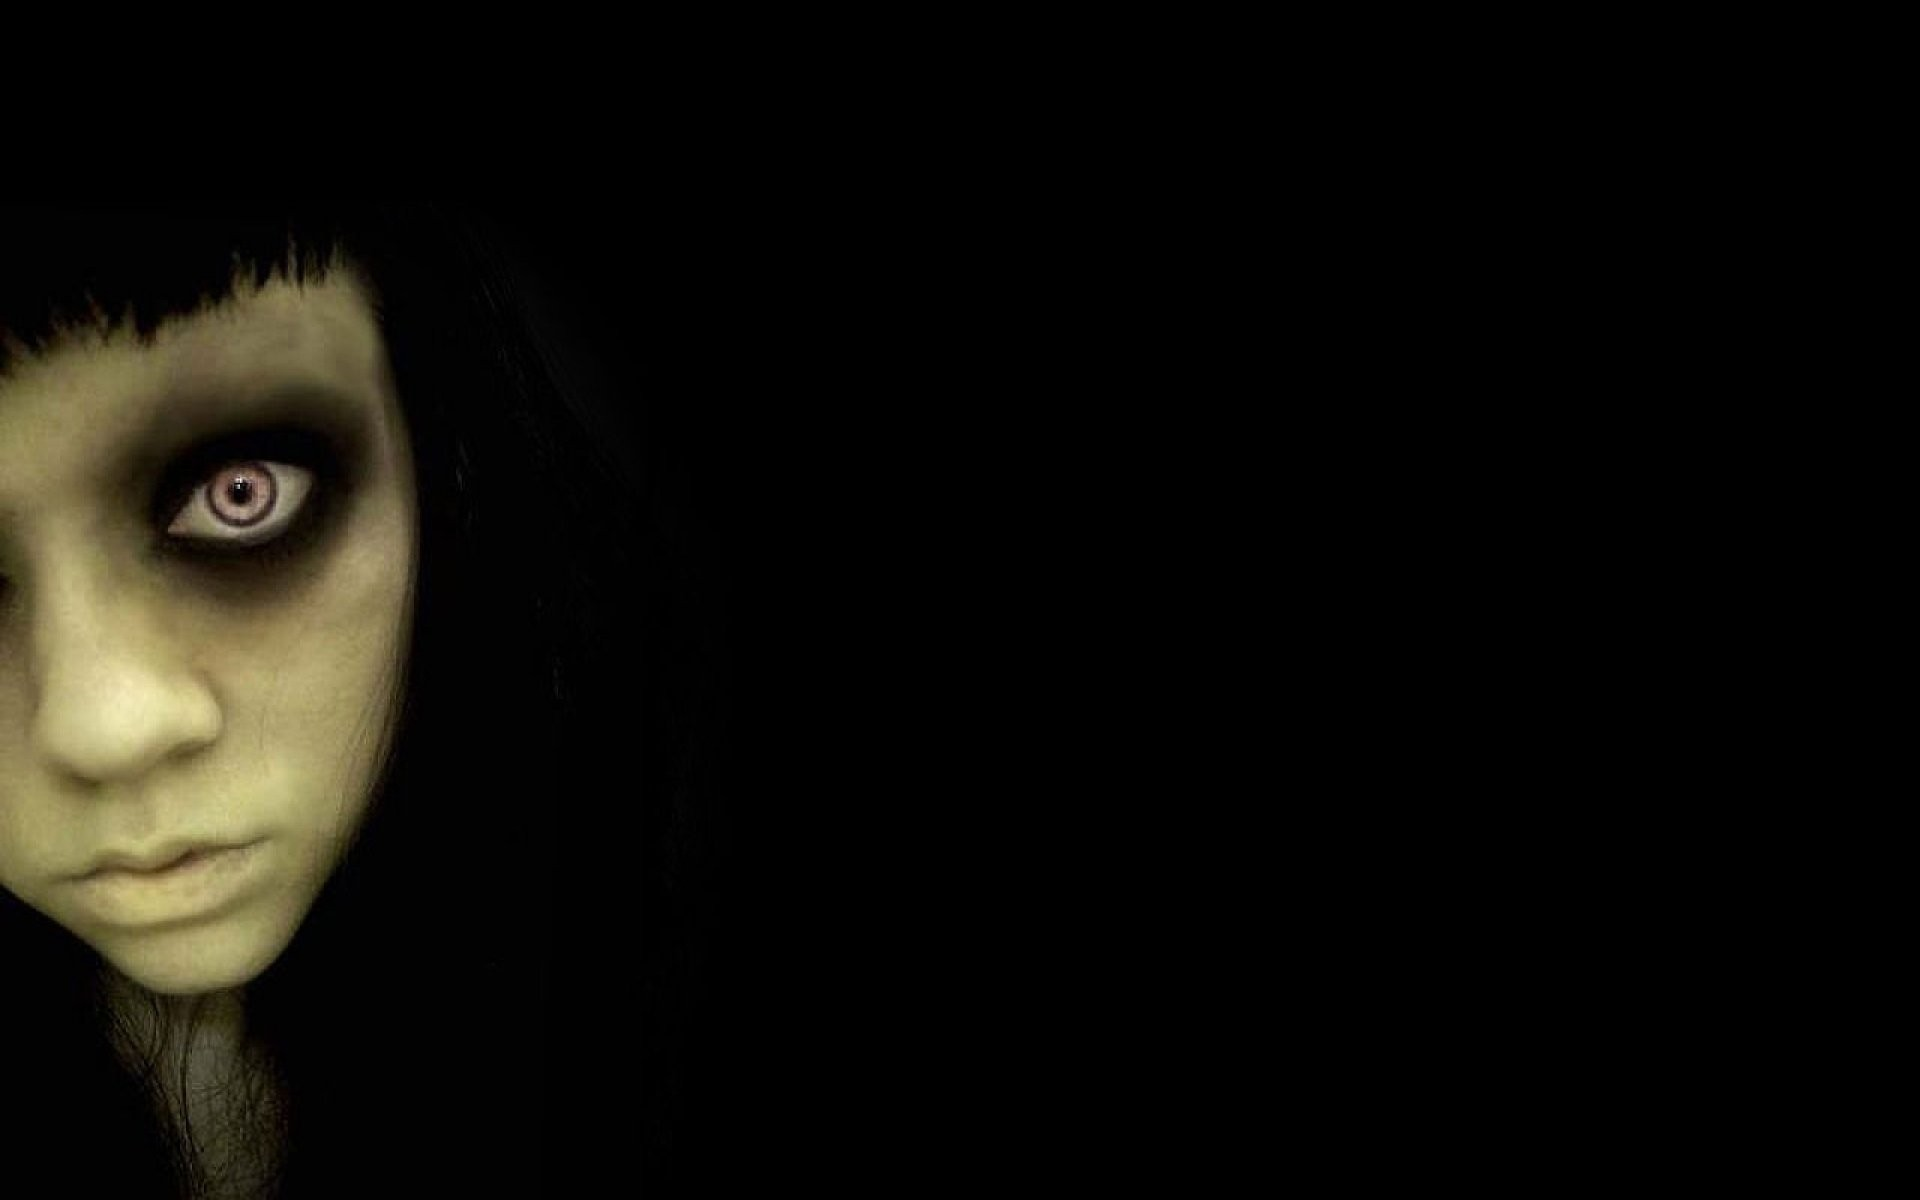 Scary background download free amazing backgrounds for - Dark horror creepy wallpapers ...